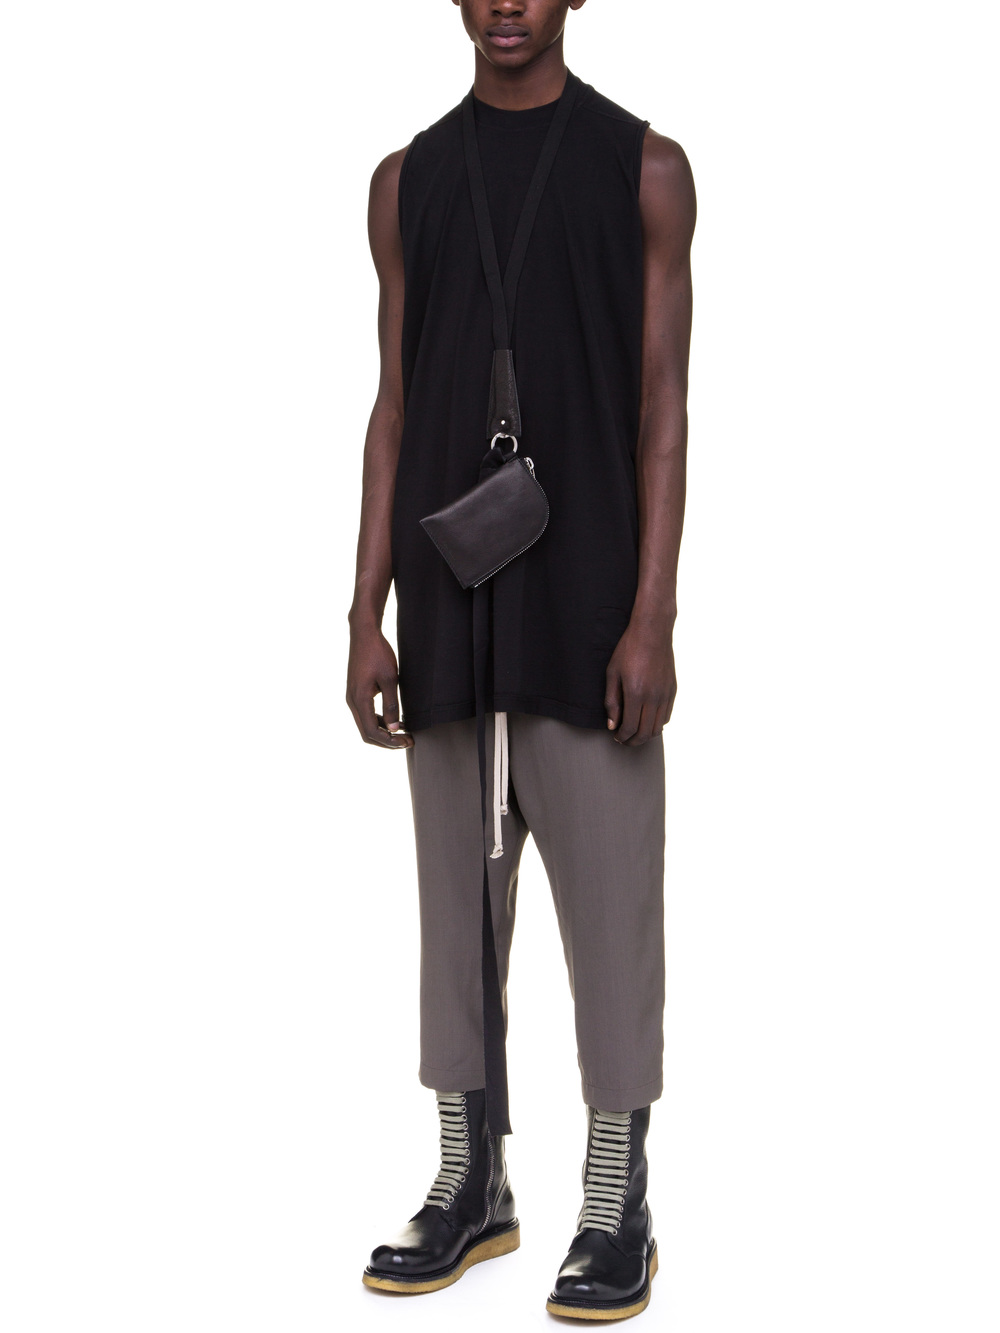 RICK OWENS NECK WALLET IN BLACK CALF LEATHER IS RECTANGULAR